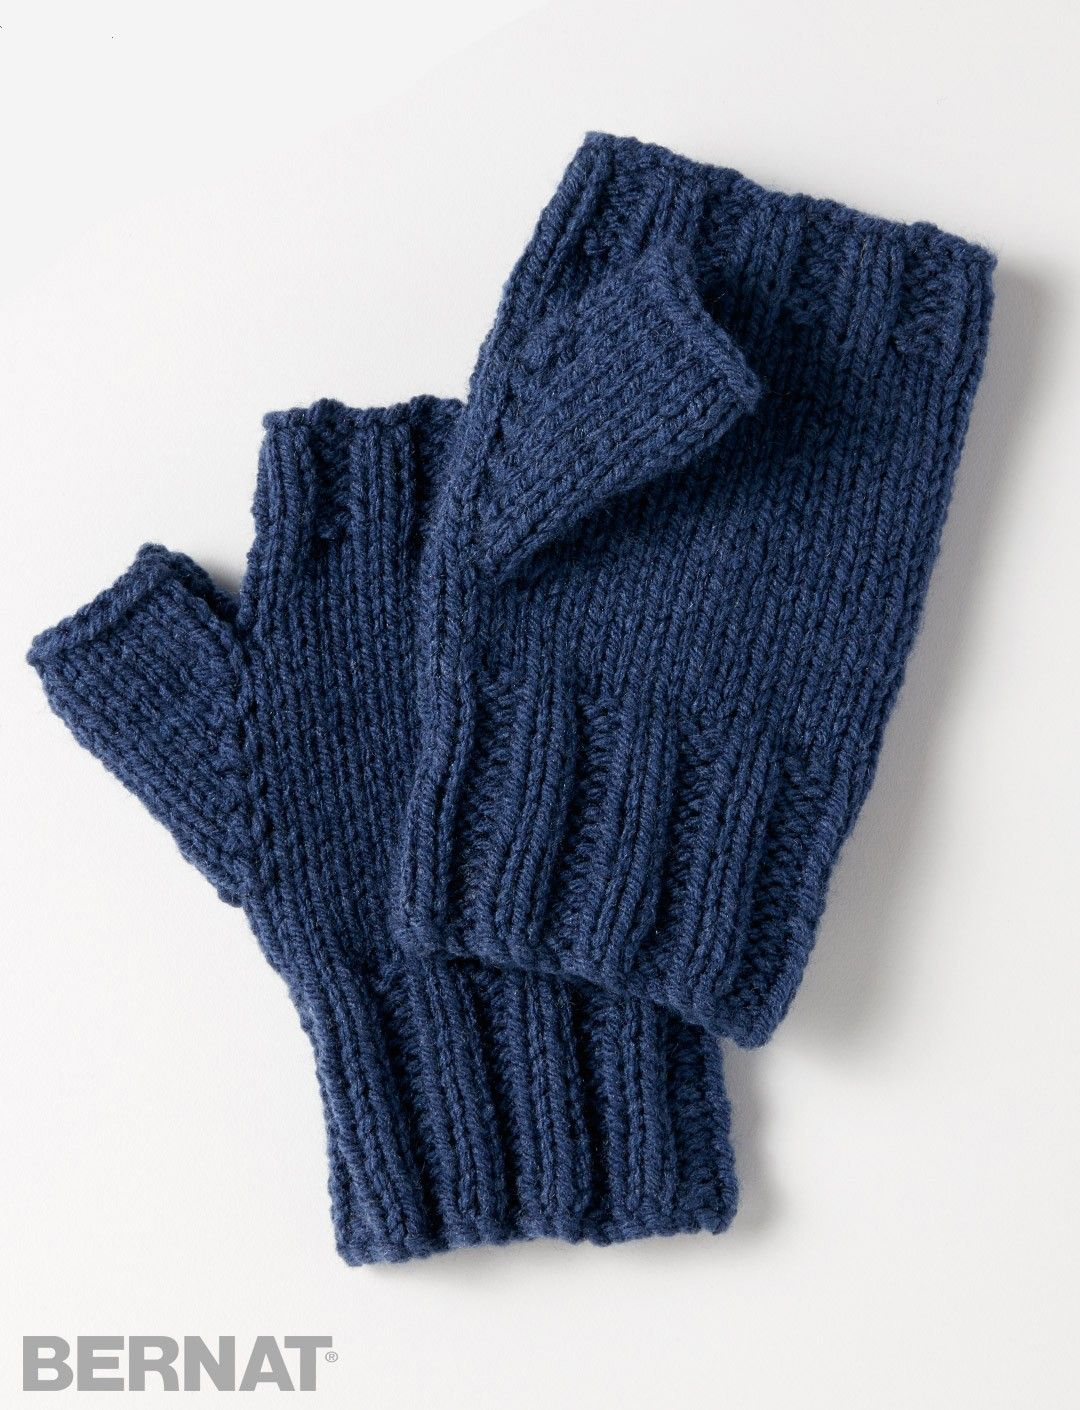 Yarnspirations.com - Bernat Fingerless Gloves - Patterns ...